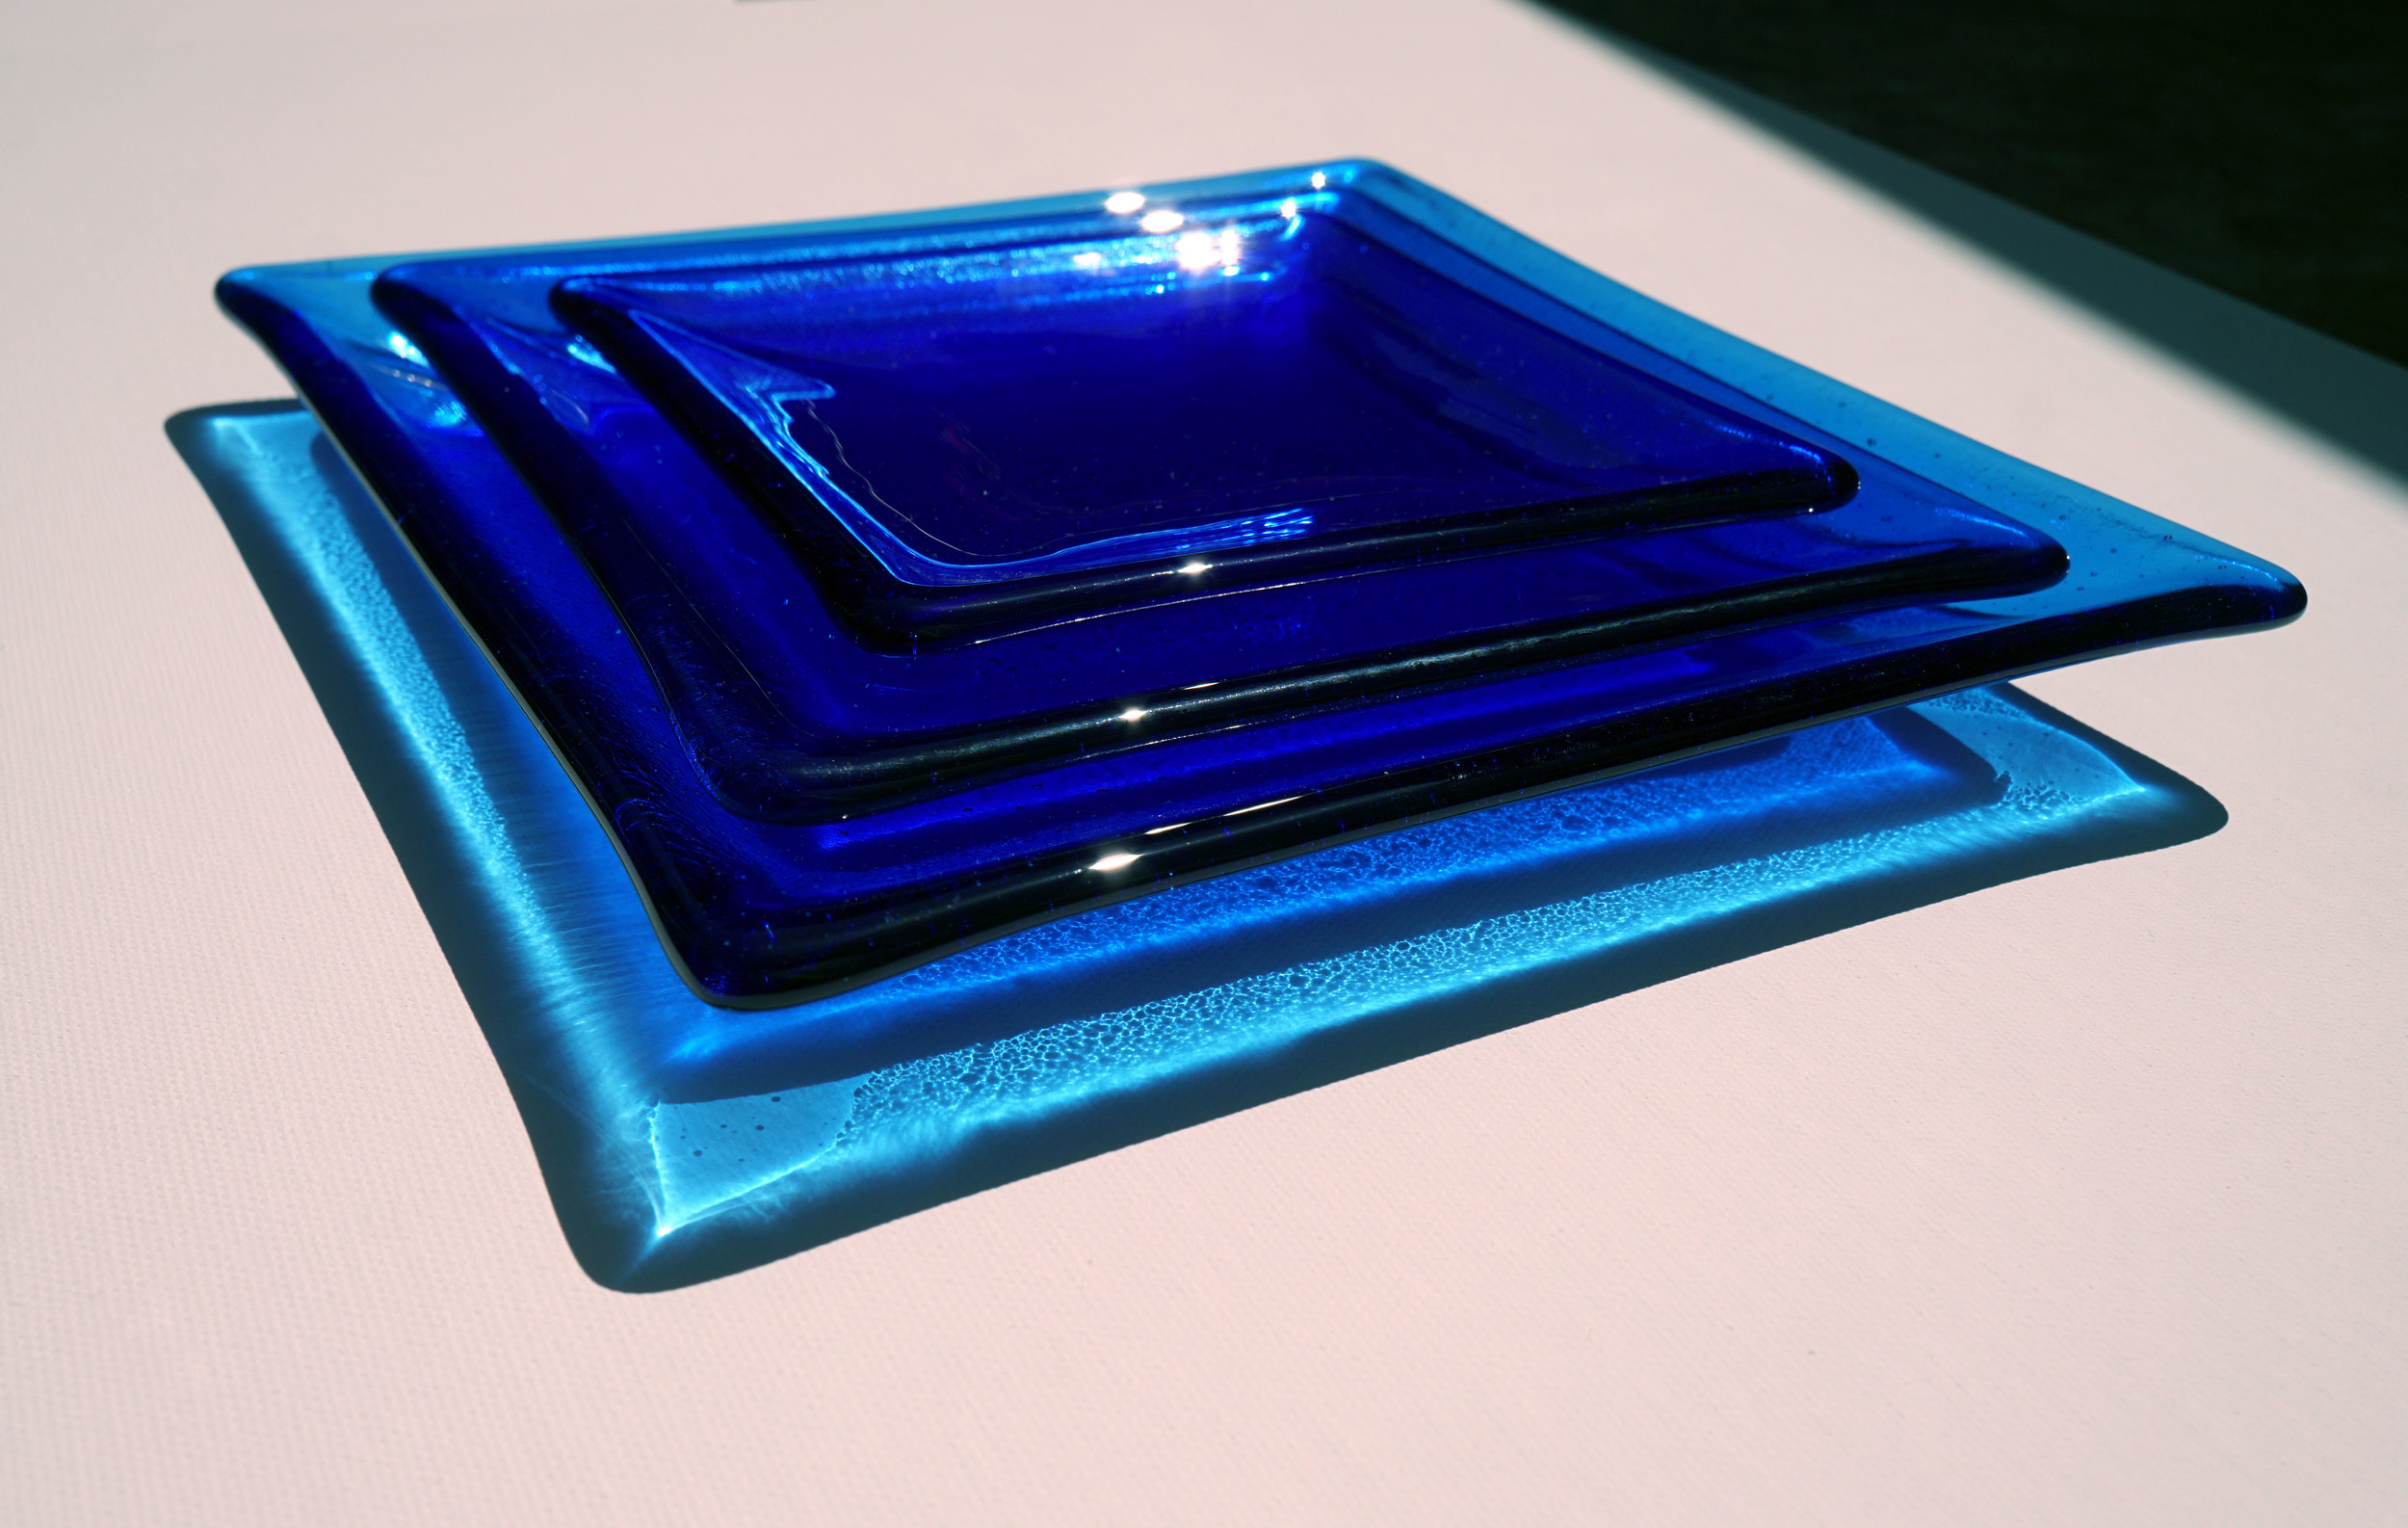 Three blue plates stacked medium resolution.jpg